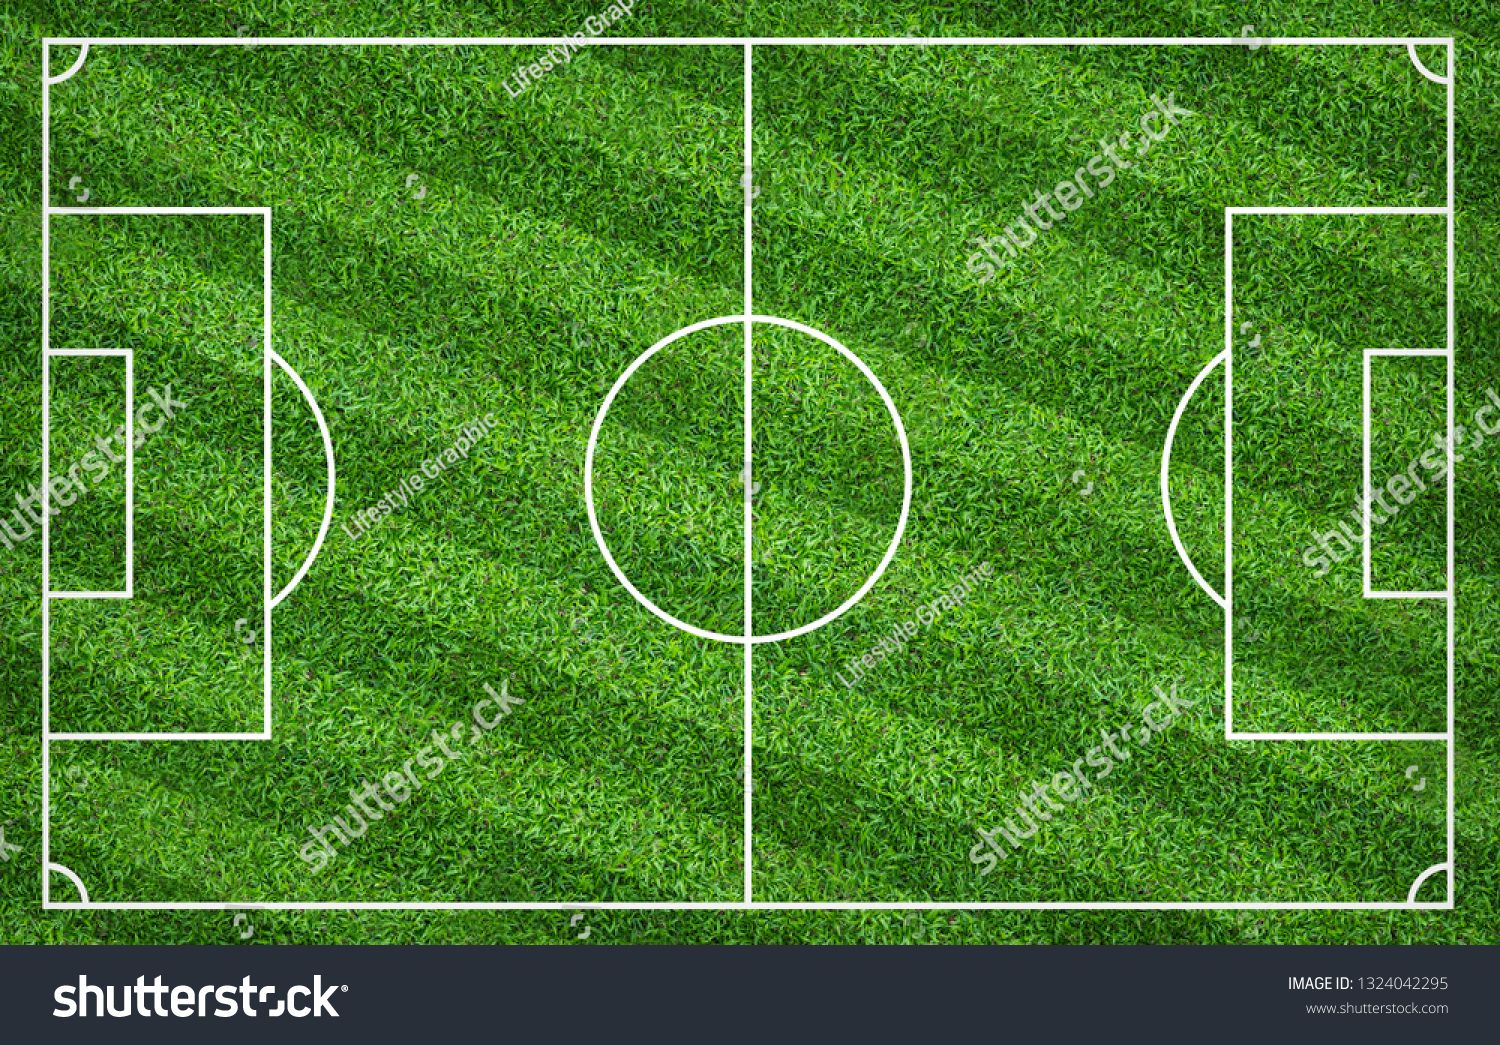 Football Field Or Soccer Field For Background Green Lawn Court For Create Sport Game Ad Spon Background Green Soccer Football Field Soccer Field Soccer